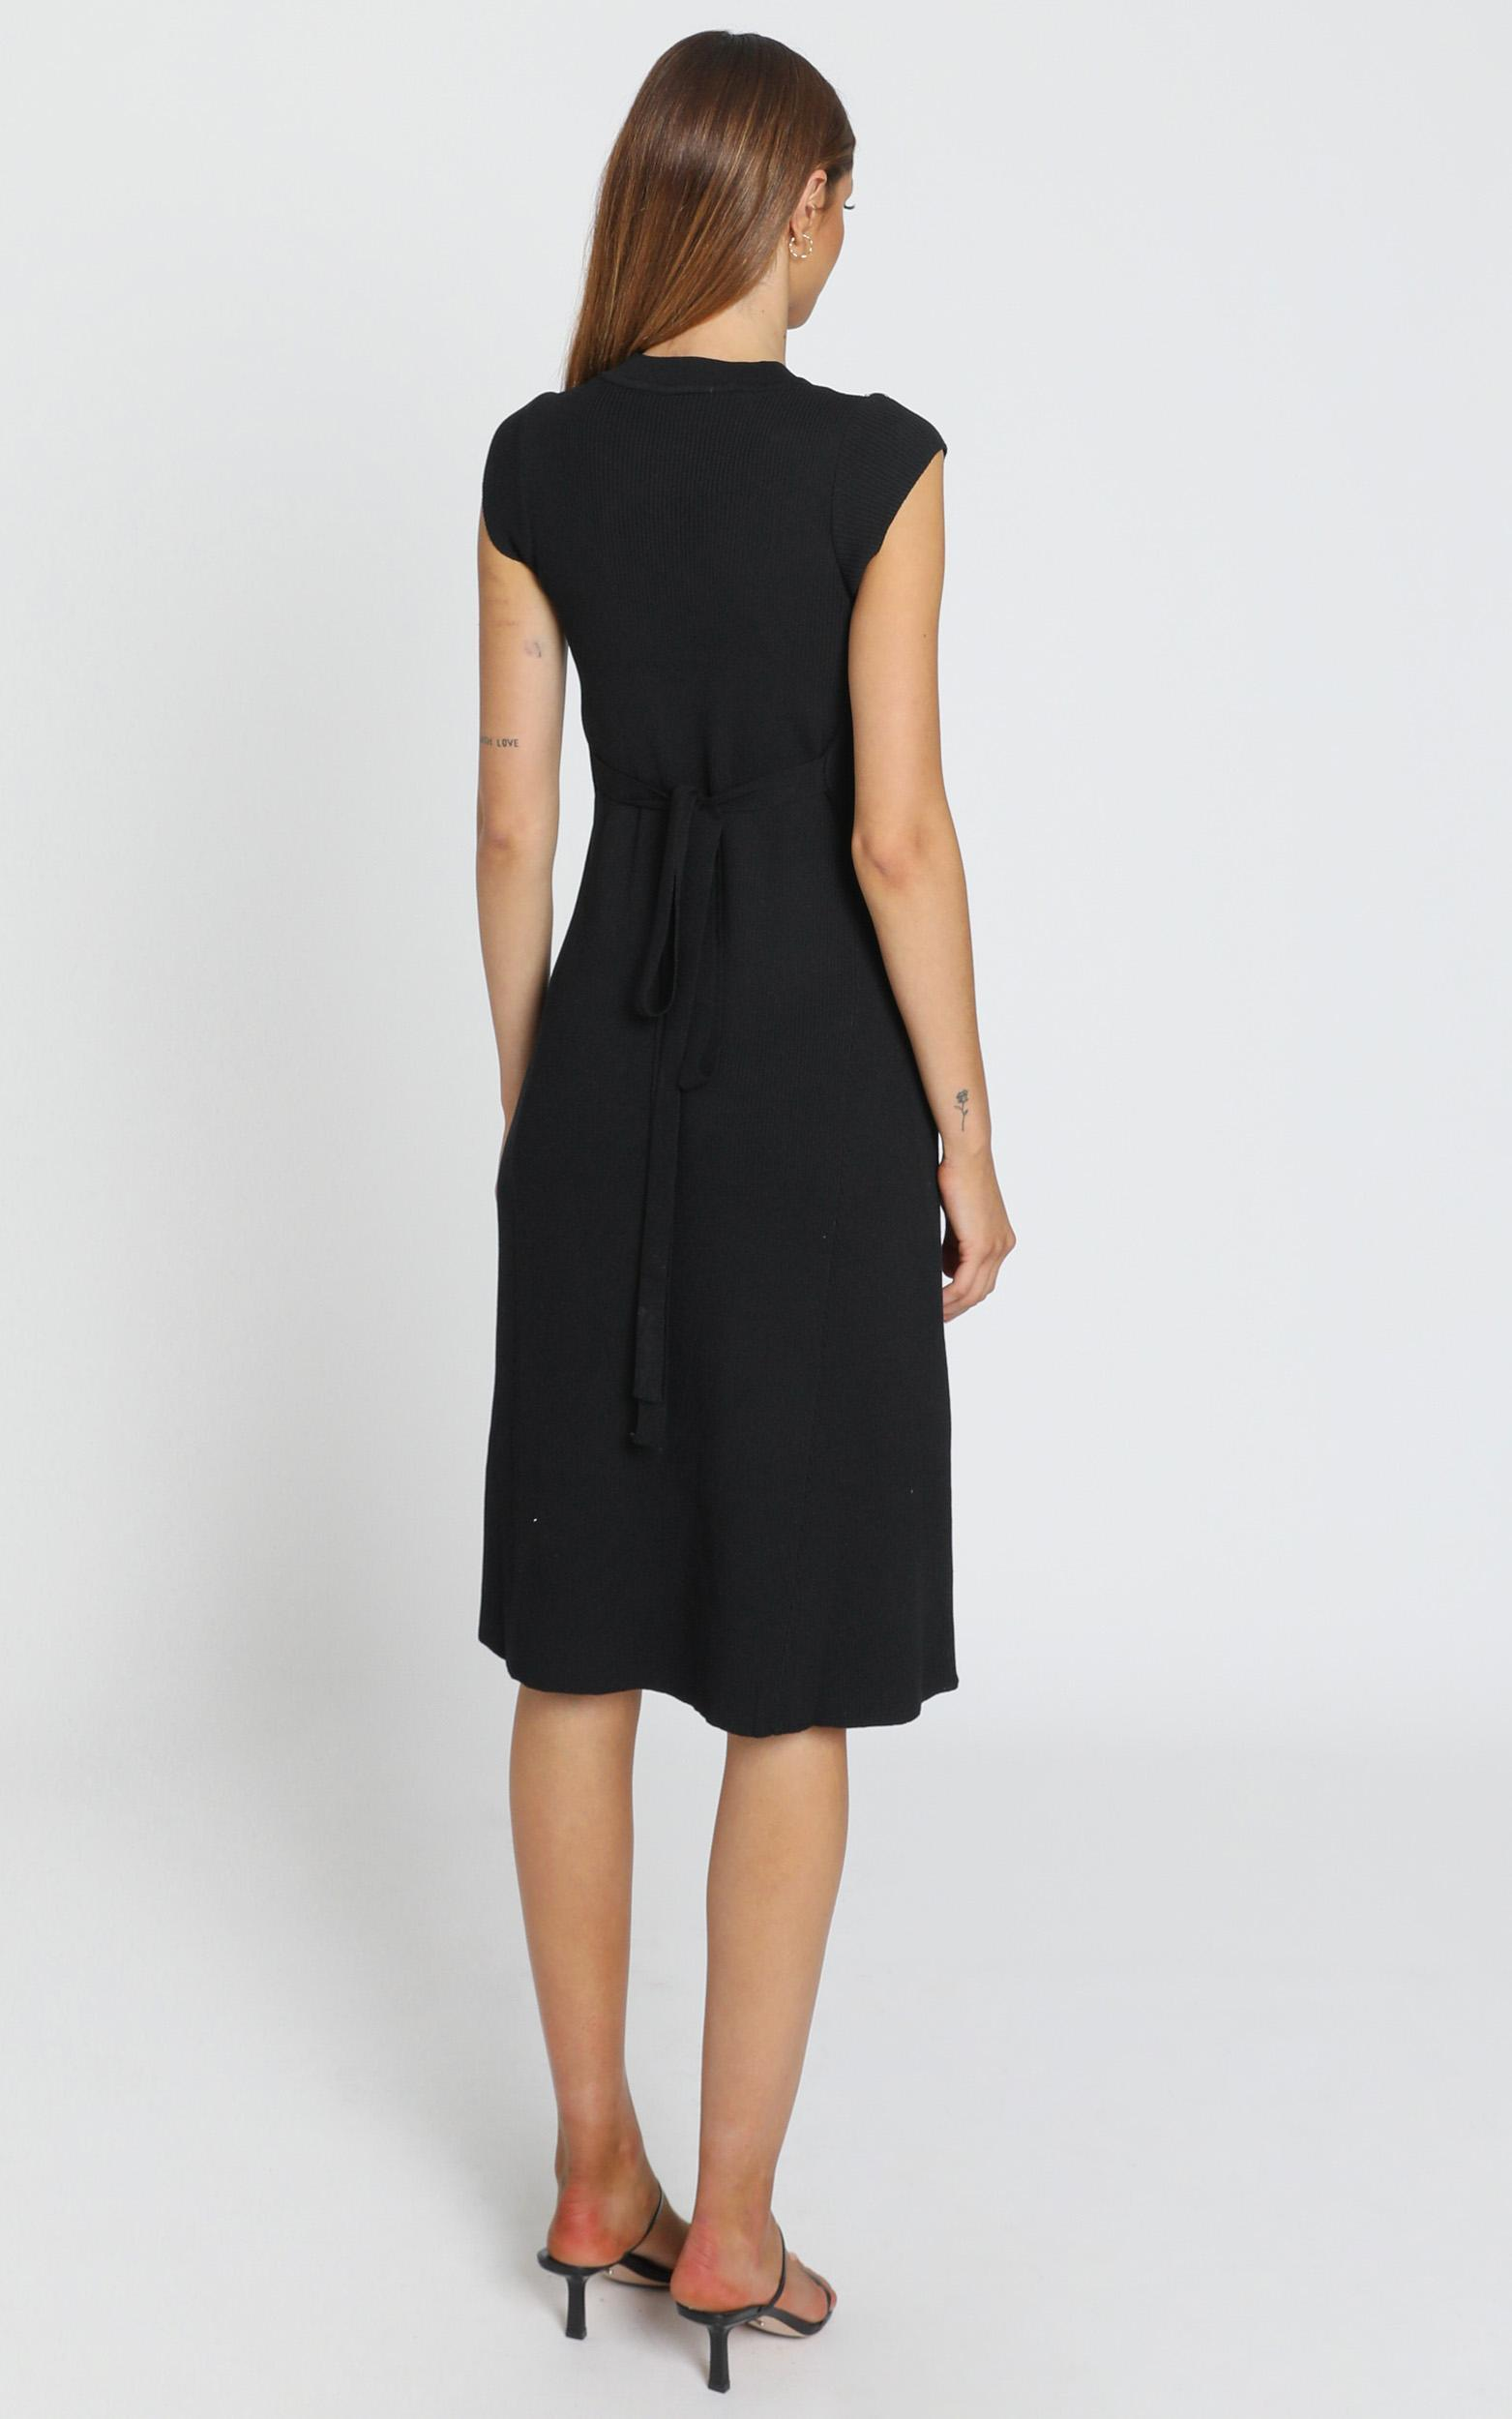 Jane Knitted Rib Dress in black - 6 (XS), Black, hi-res image number null